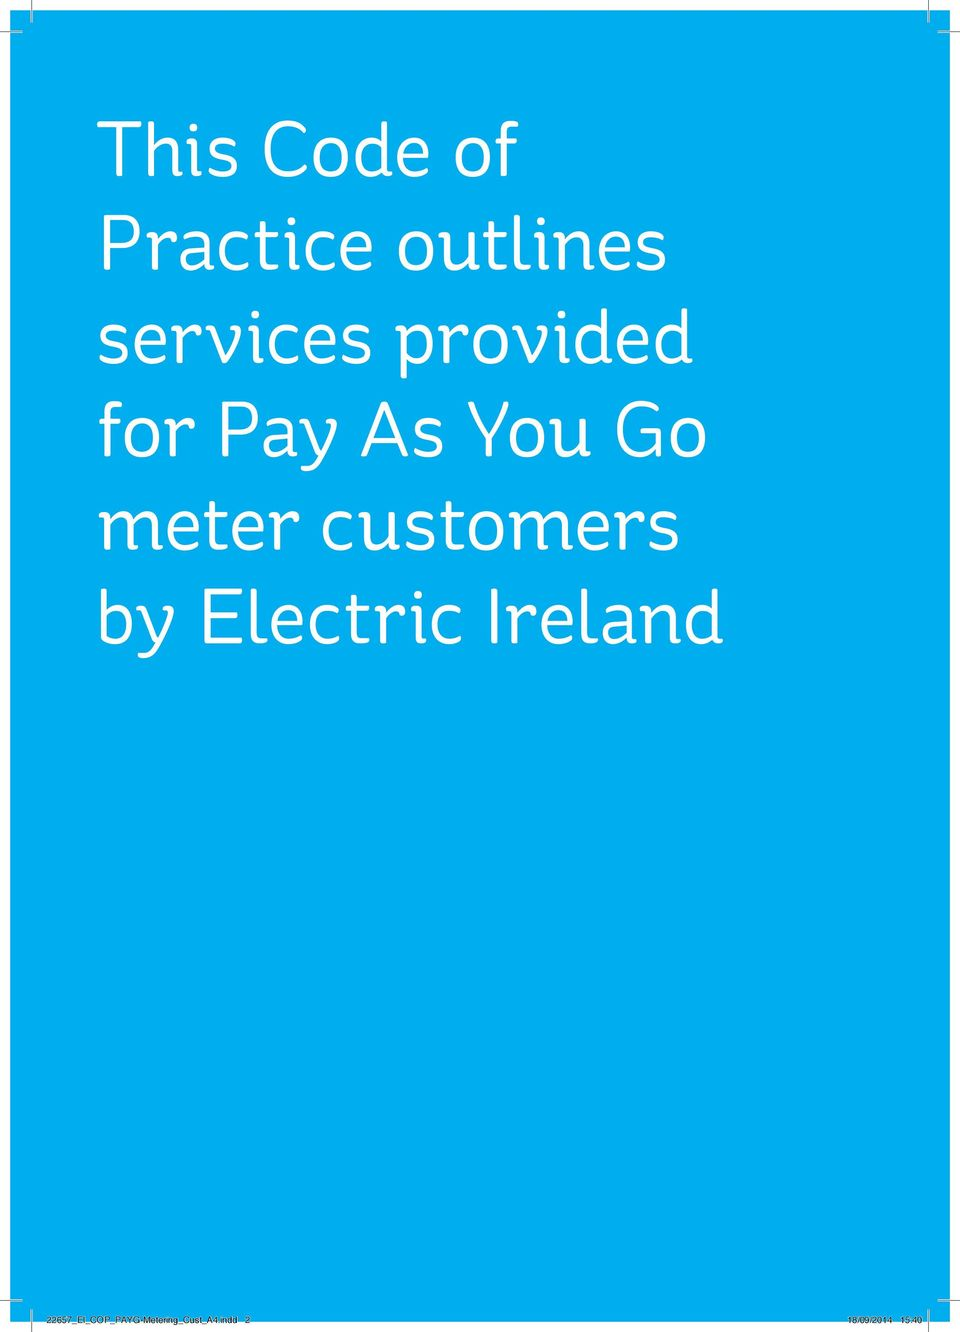 customers by Electric Ireland